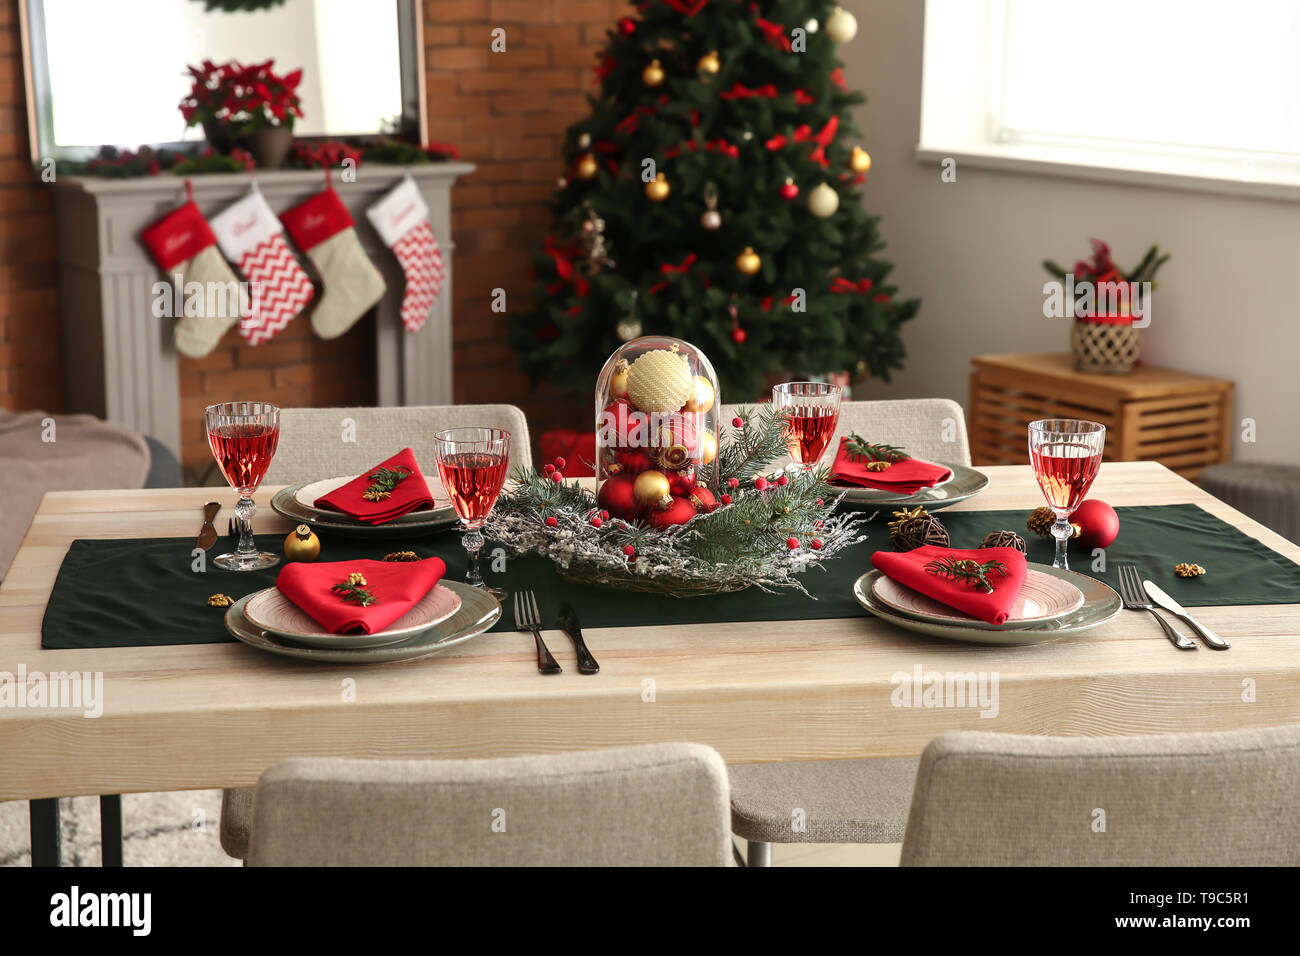 Beautiful Table Setting With Christmas Decorations In Living Room Stock Photo Alamy